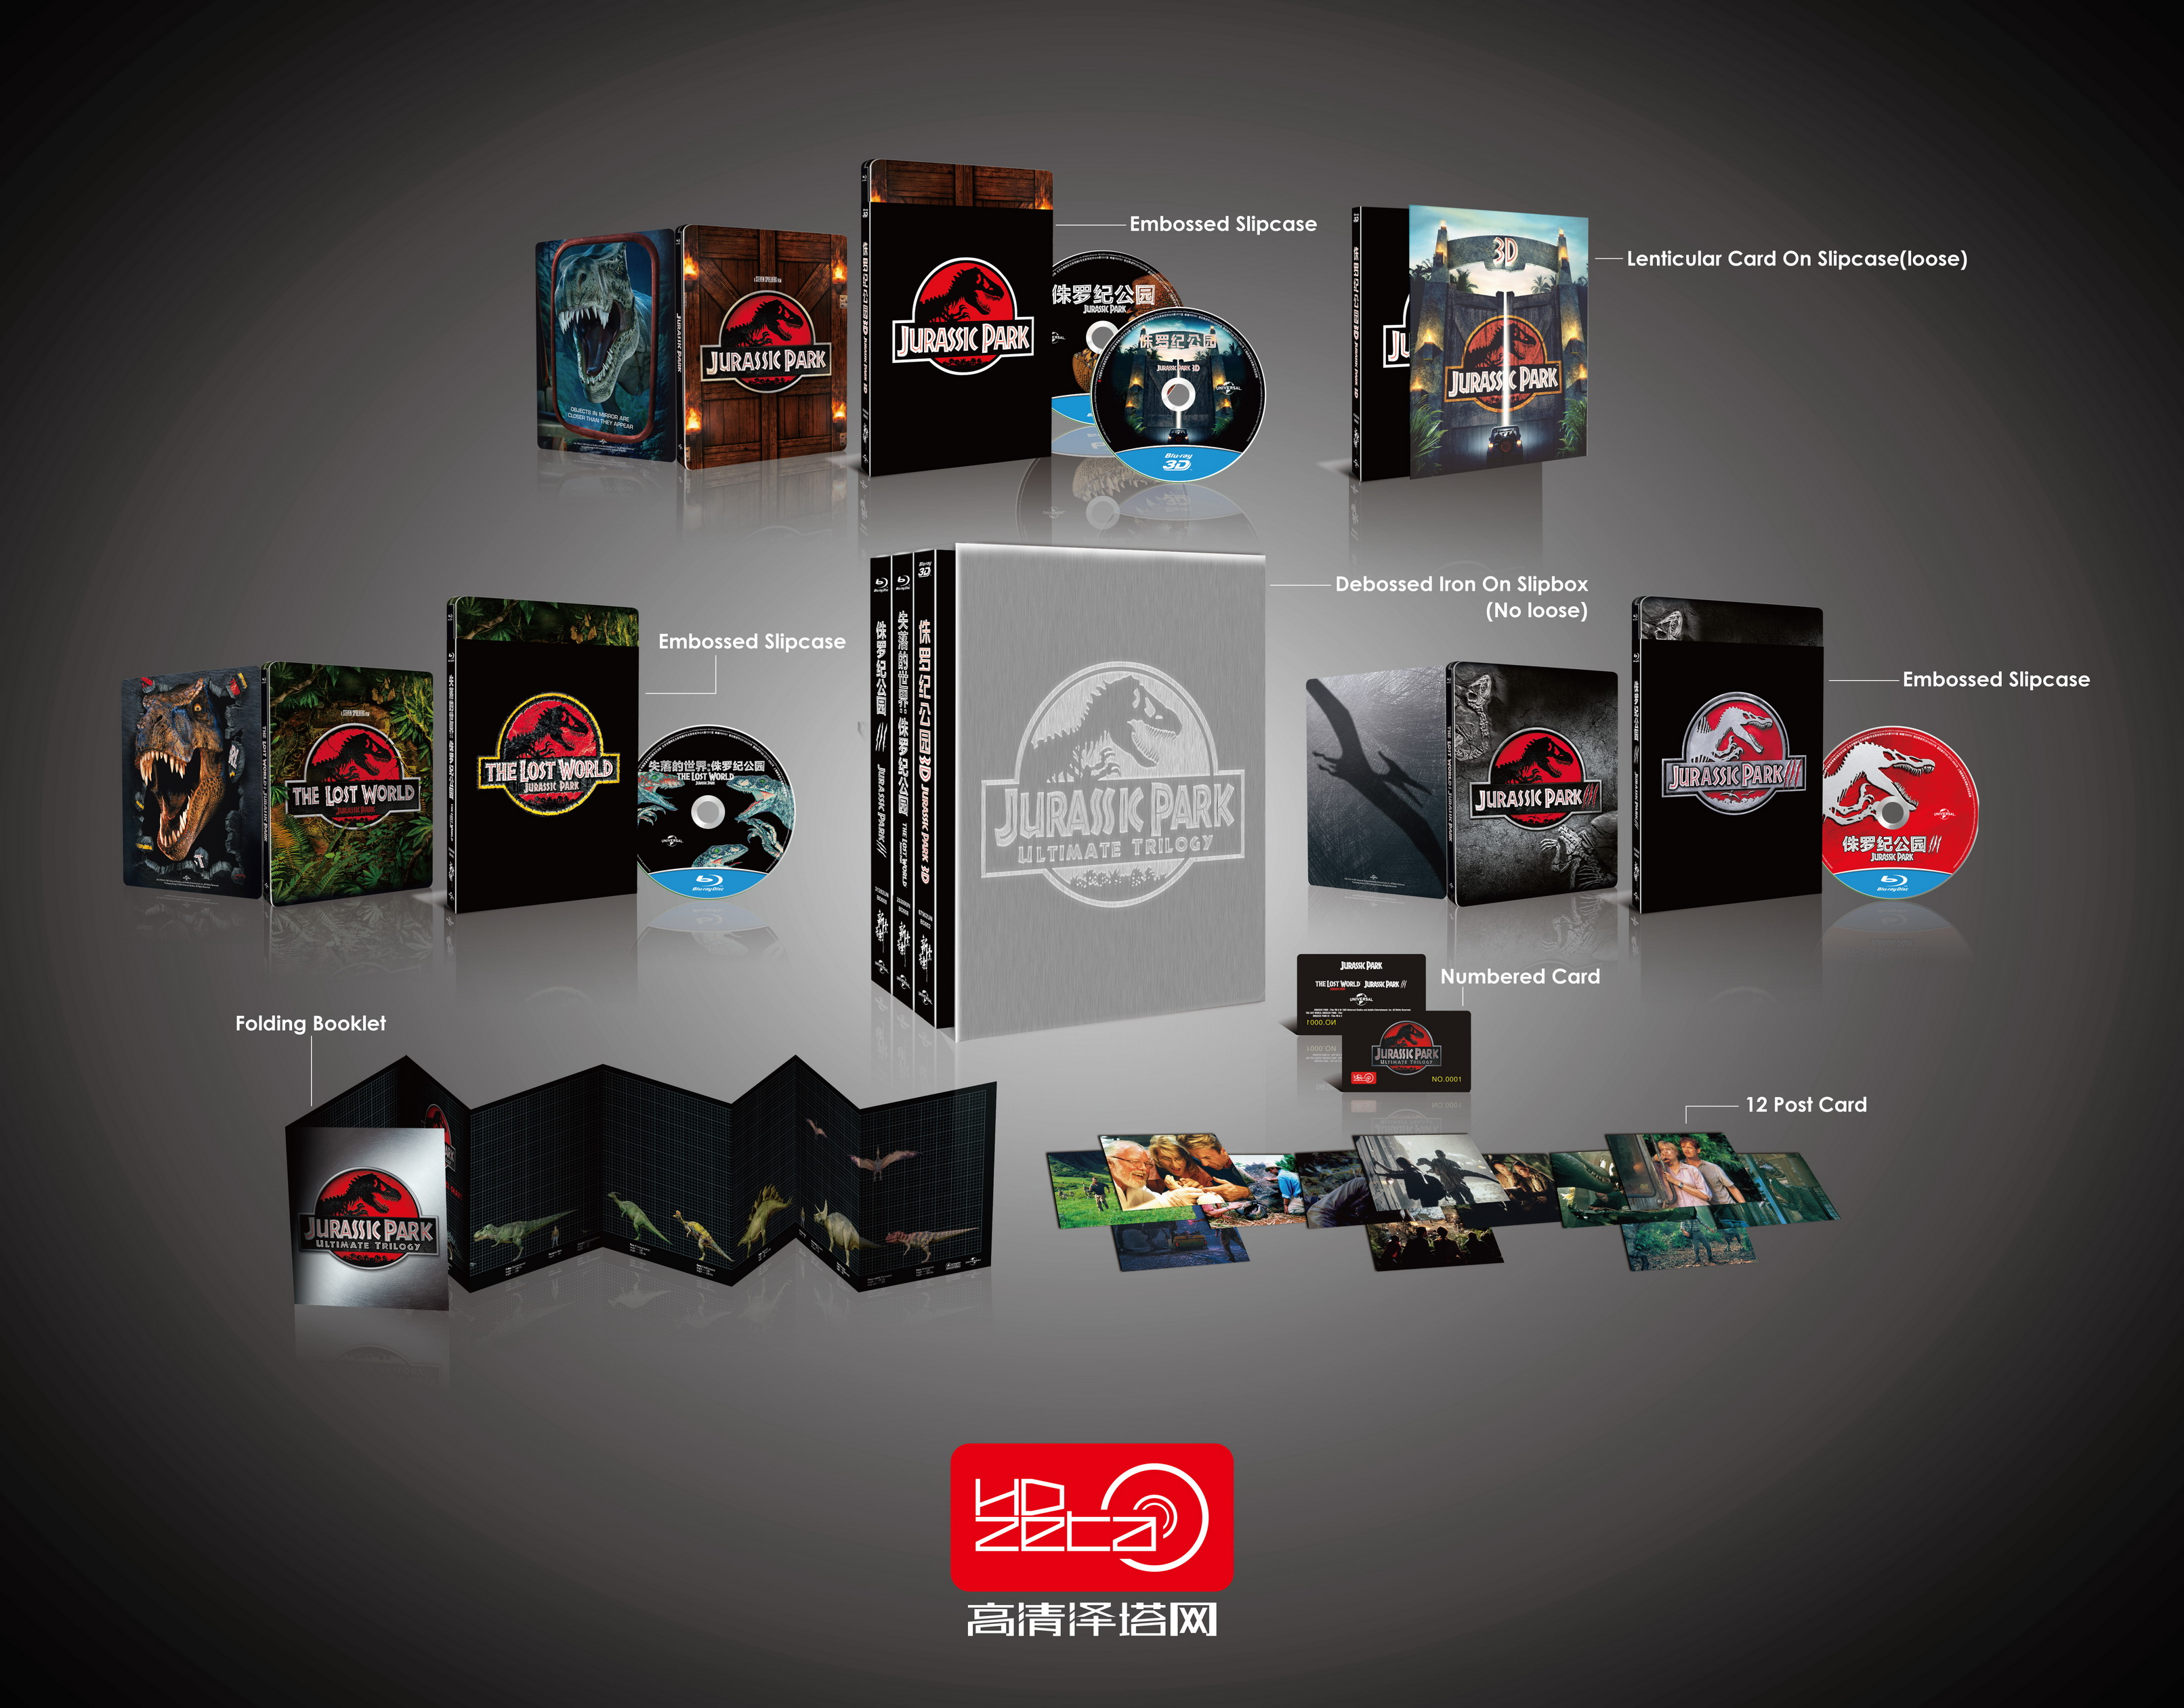 jurassic park et elektra en steelbook dition collector. Black Bedroom Furniture Sets. Home Design Ideas